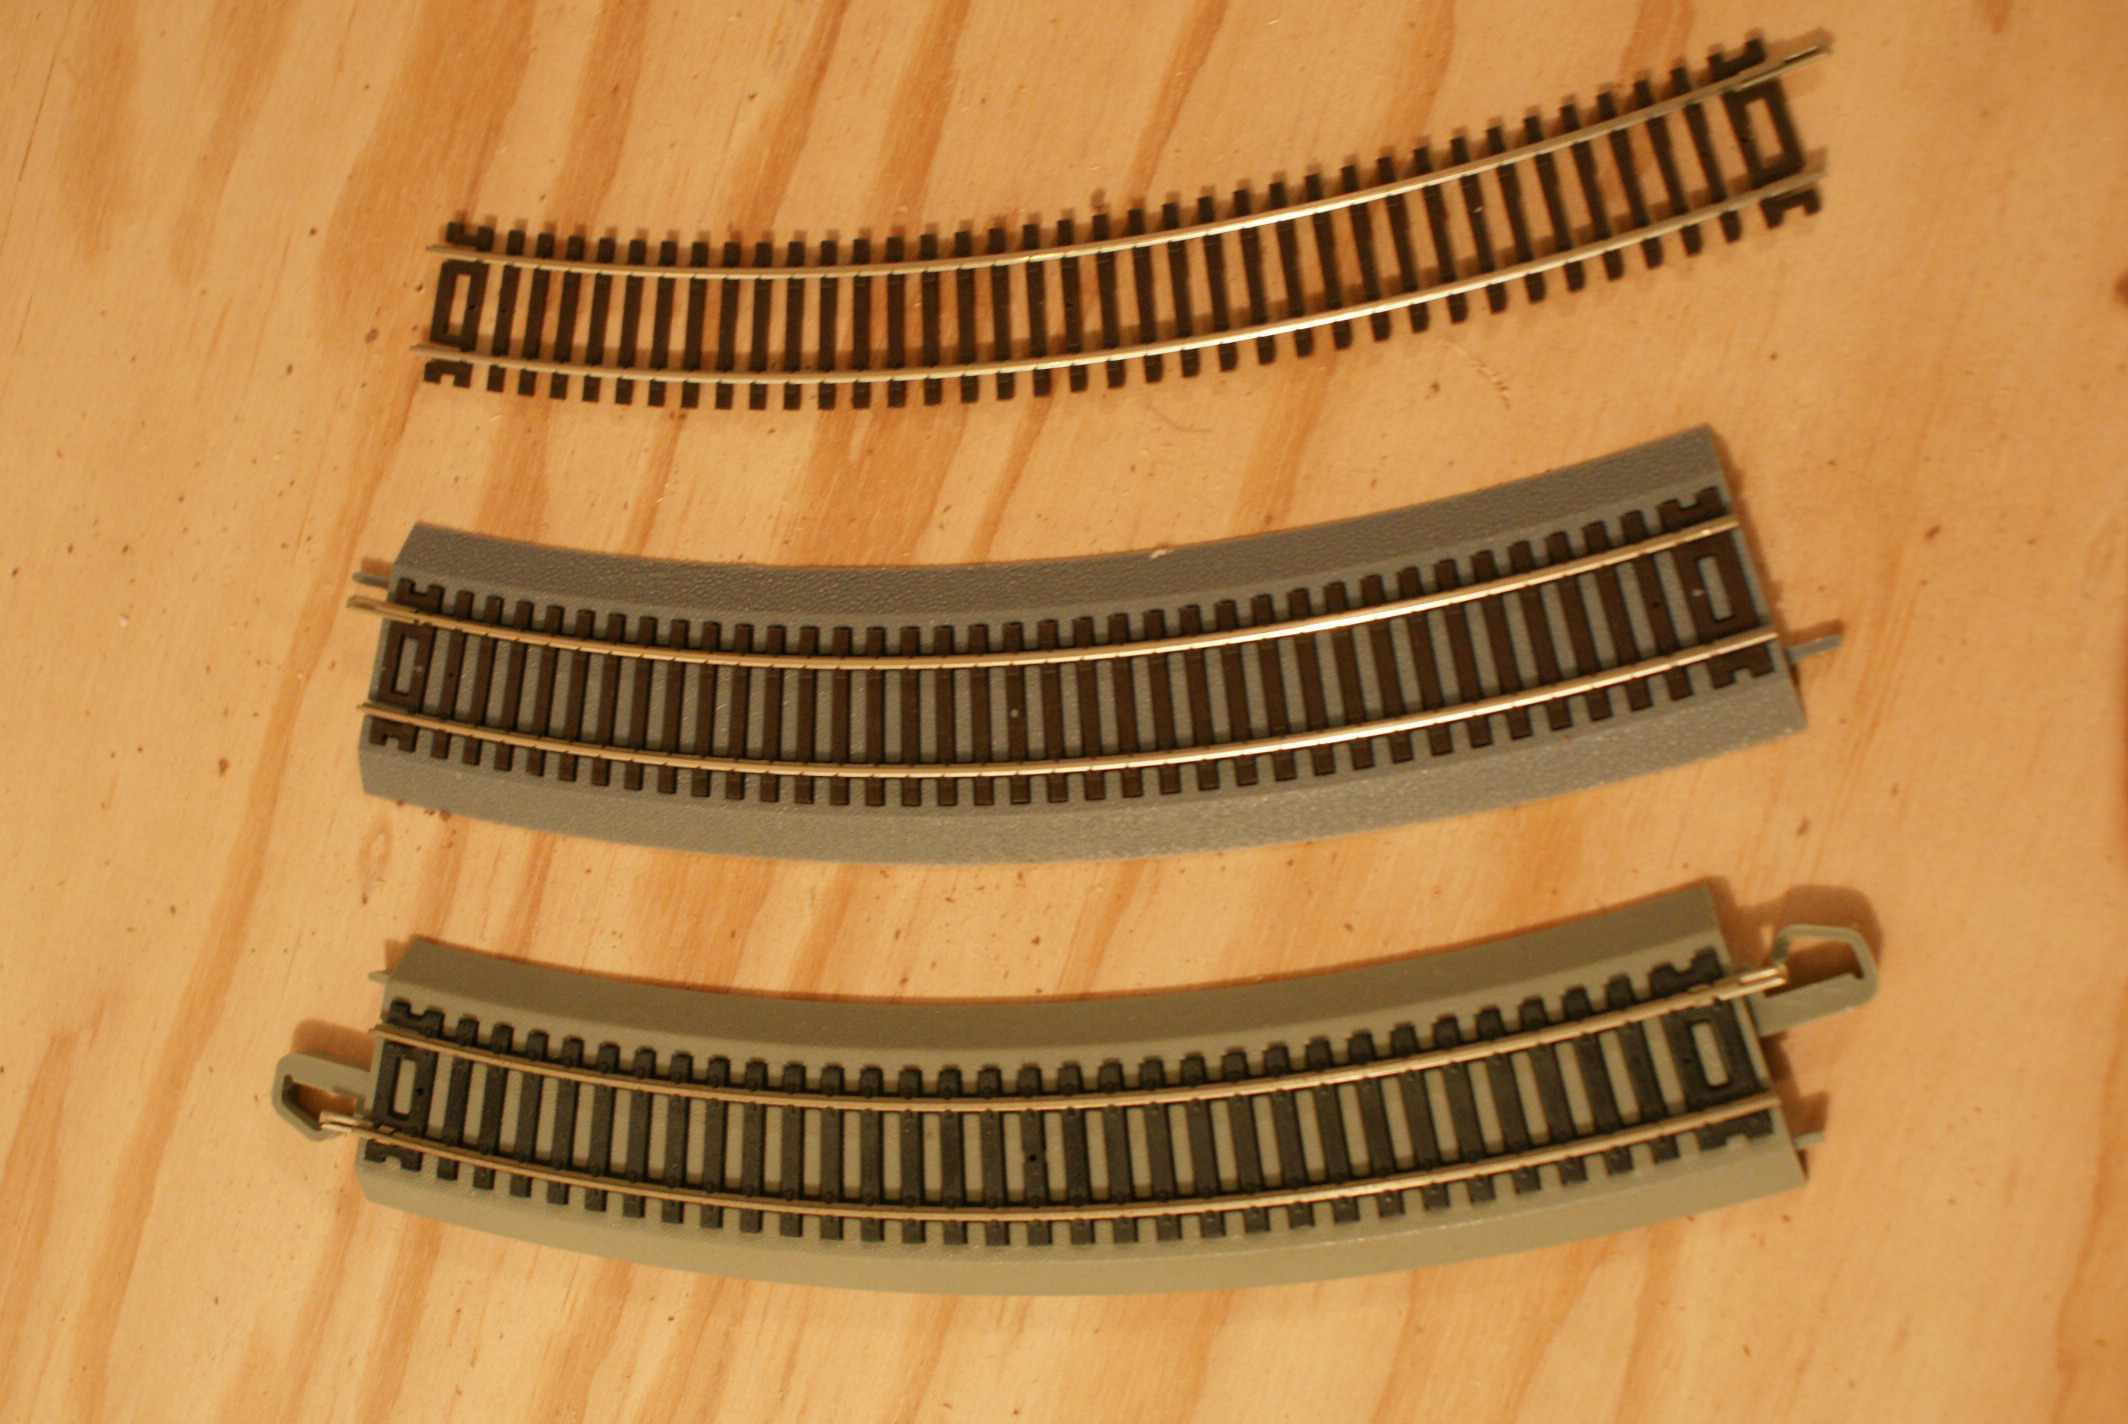 Tips To Improve A Christmas Tree Train Display Wiring Ho Tracks For Storage With Attached Roadbed Are Available In Many Sets And Scales 2010 Ryan C Kunkle Licensed Aboutcom Inc